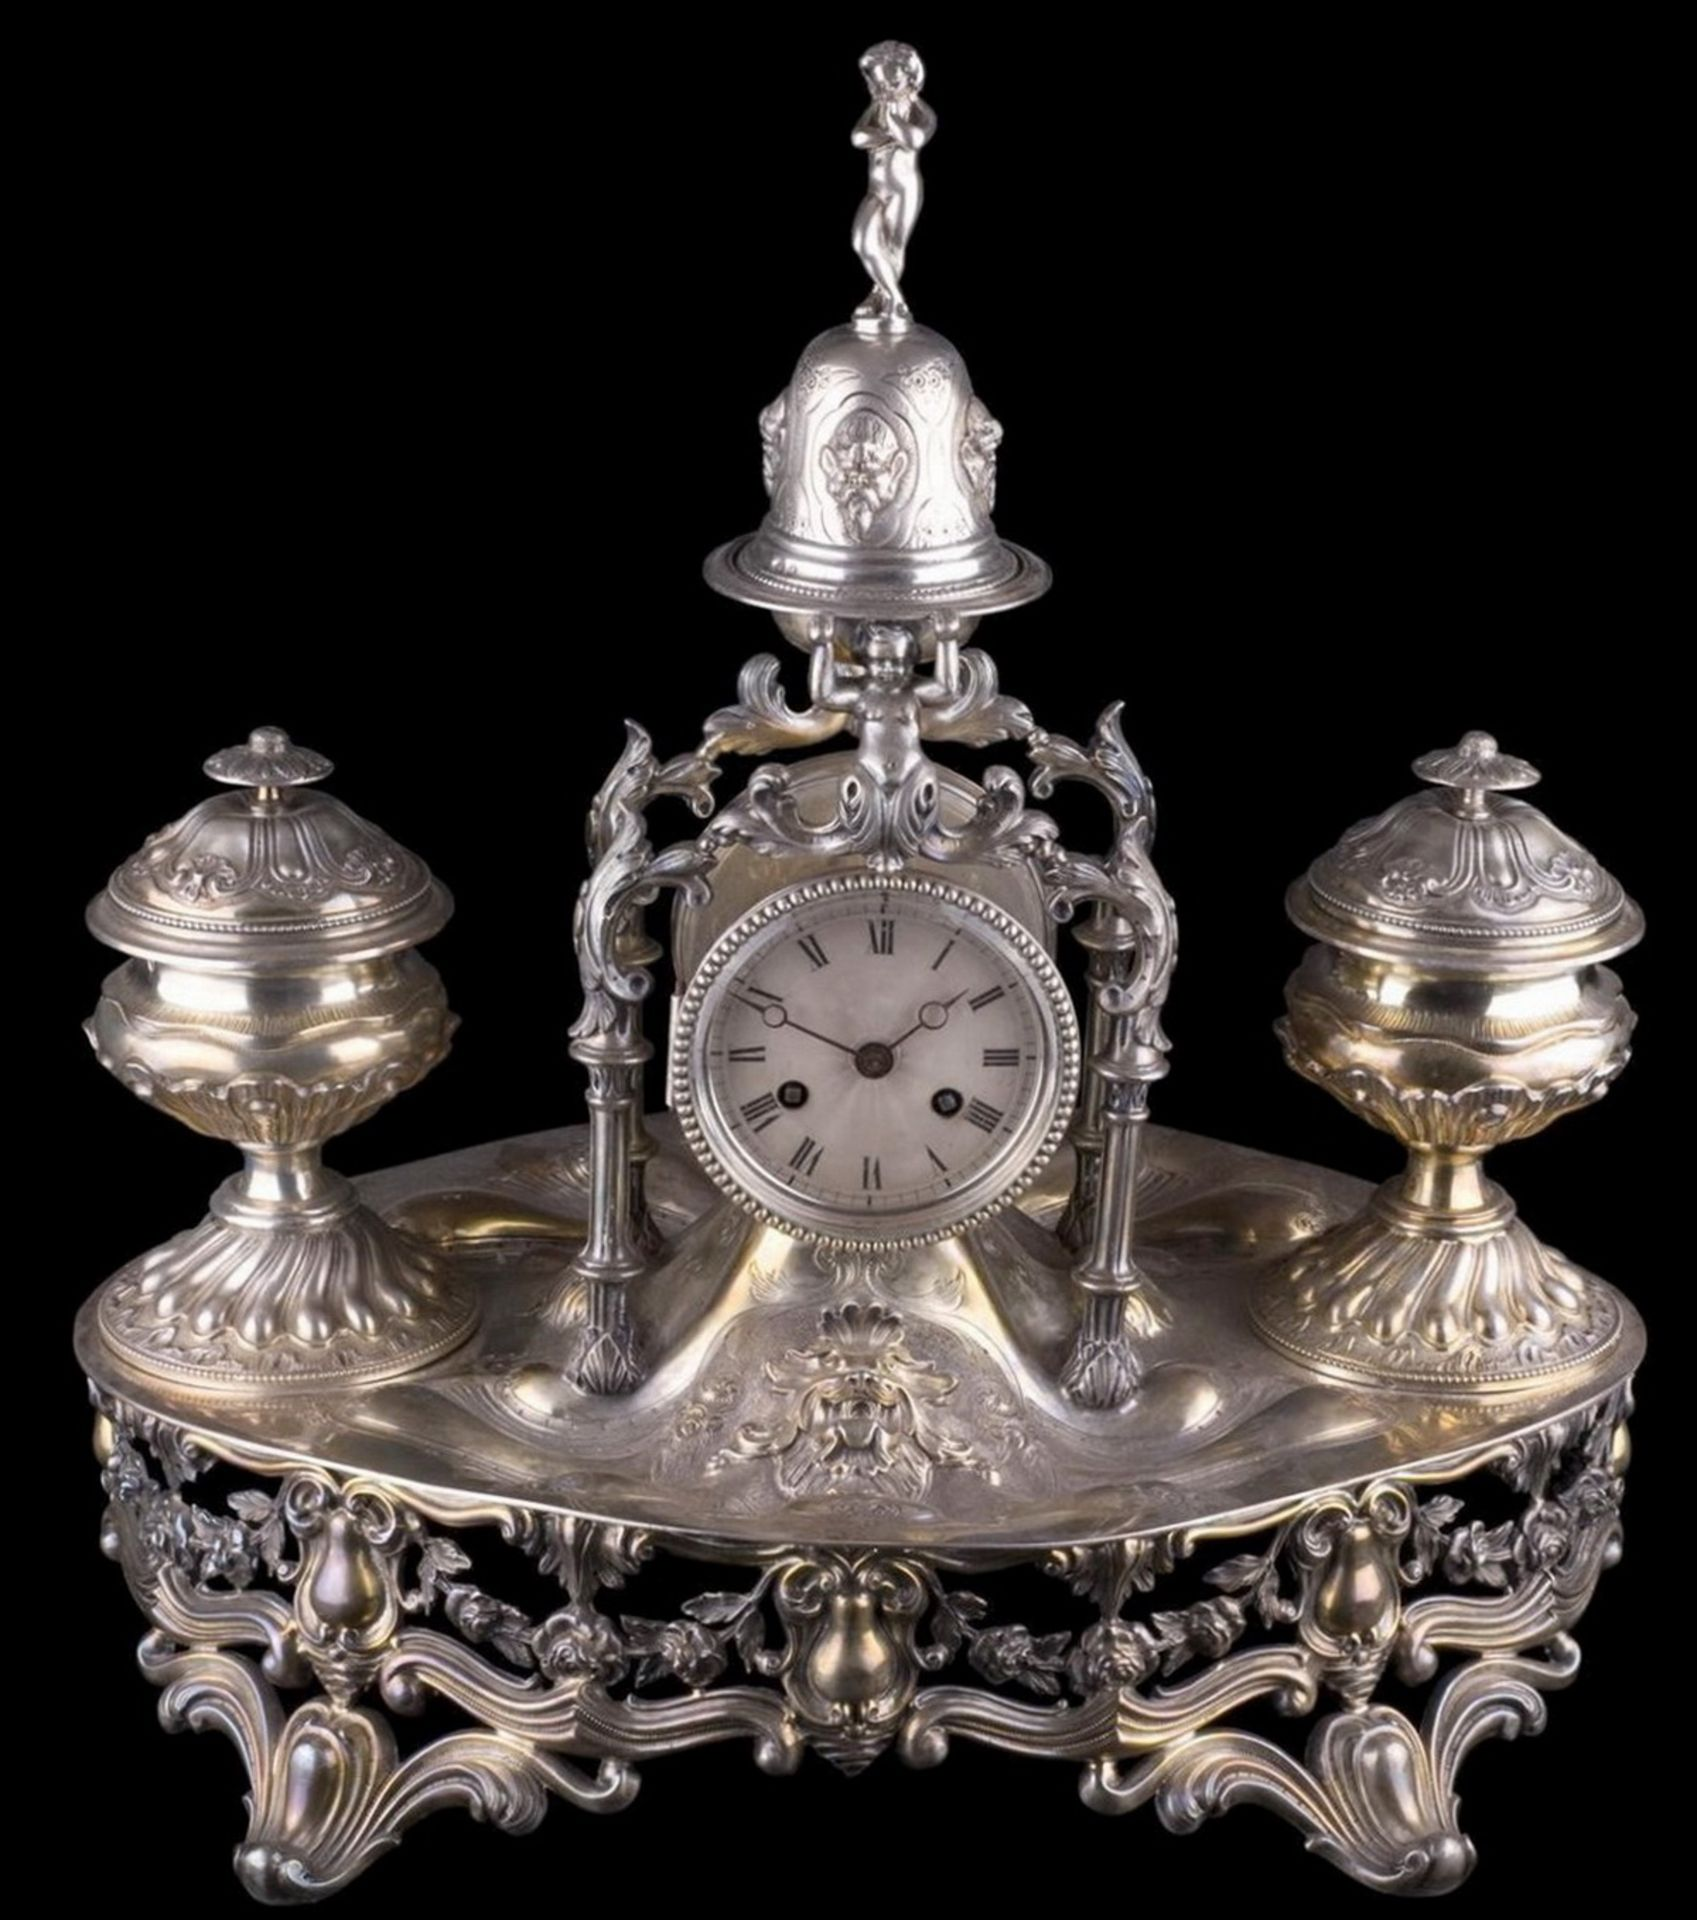 Fine quality silver inkstand with the table clock and the bell. Emile Hugo workshop. France, Paris.  - Bild 2 aus 2